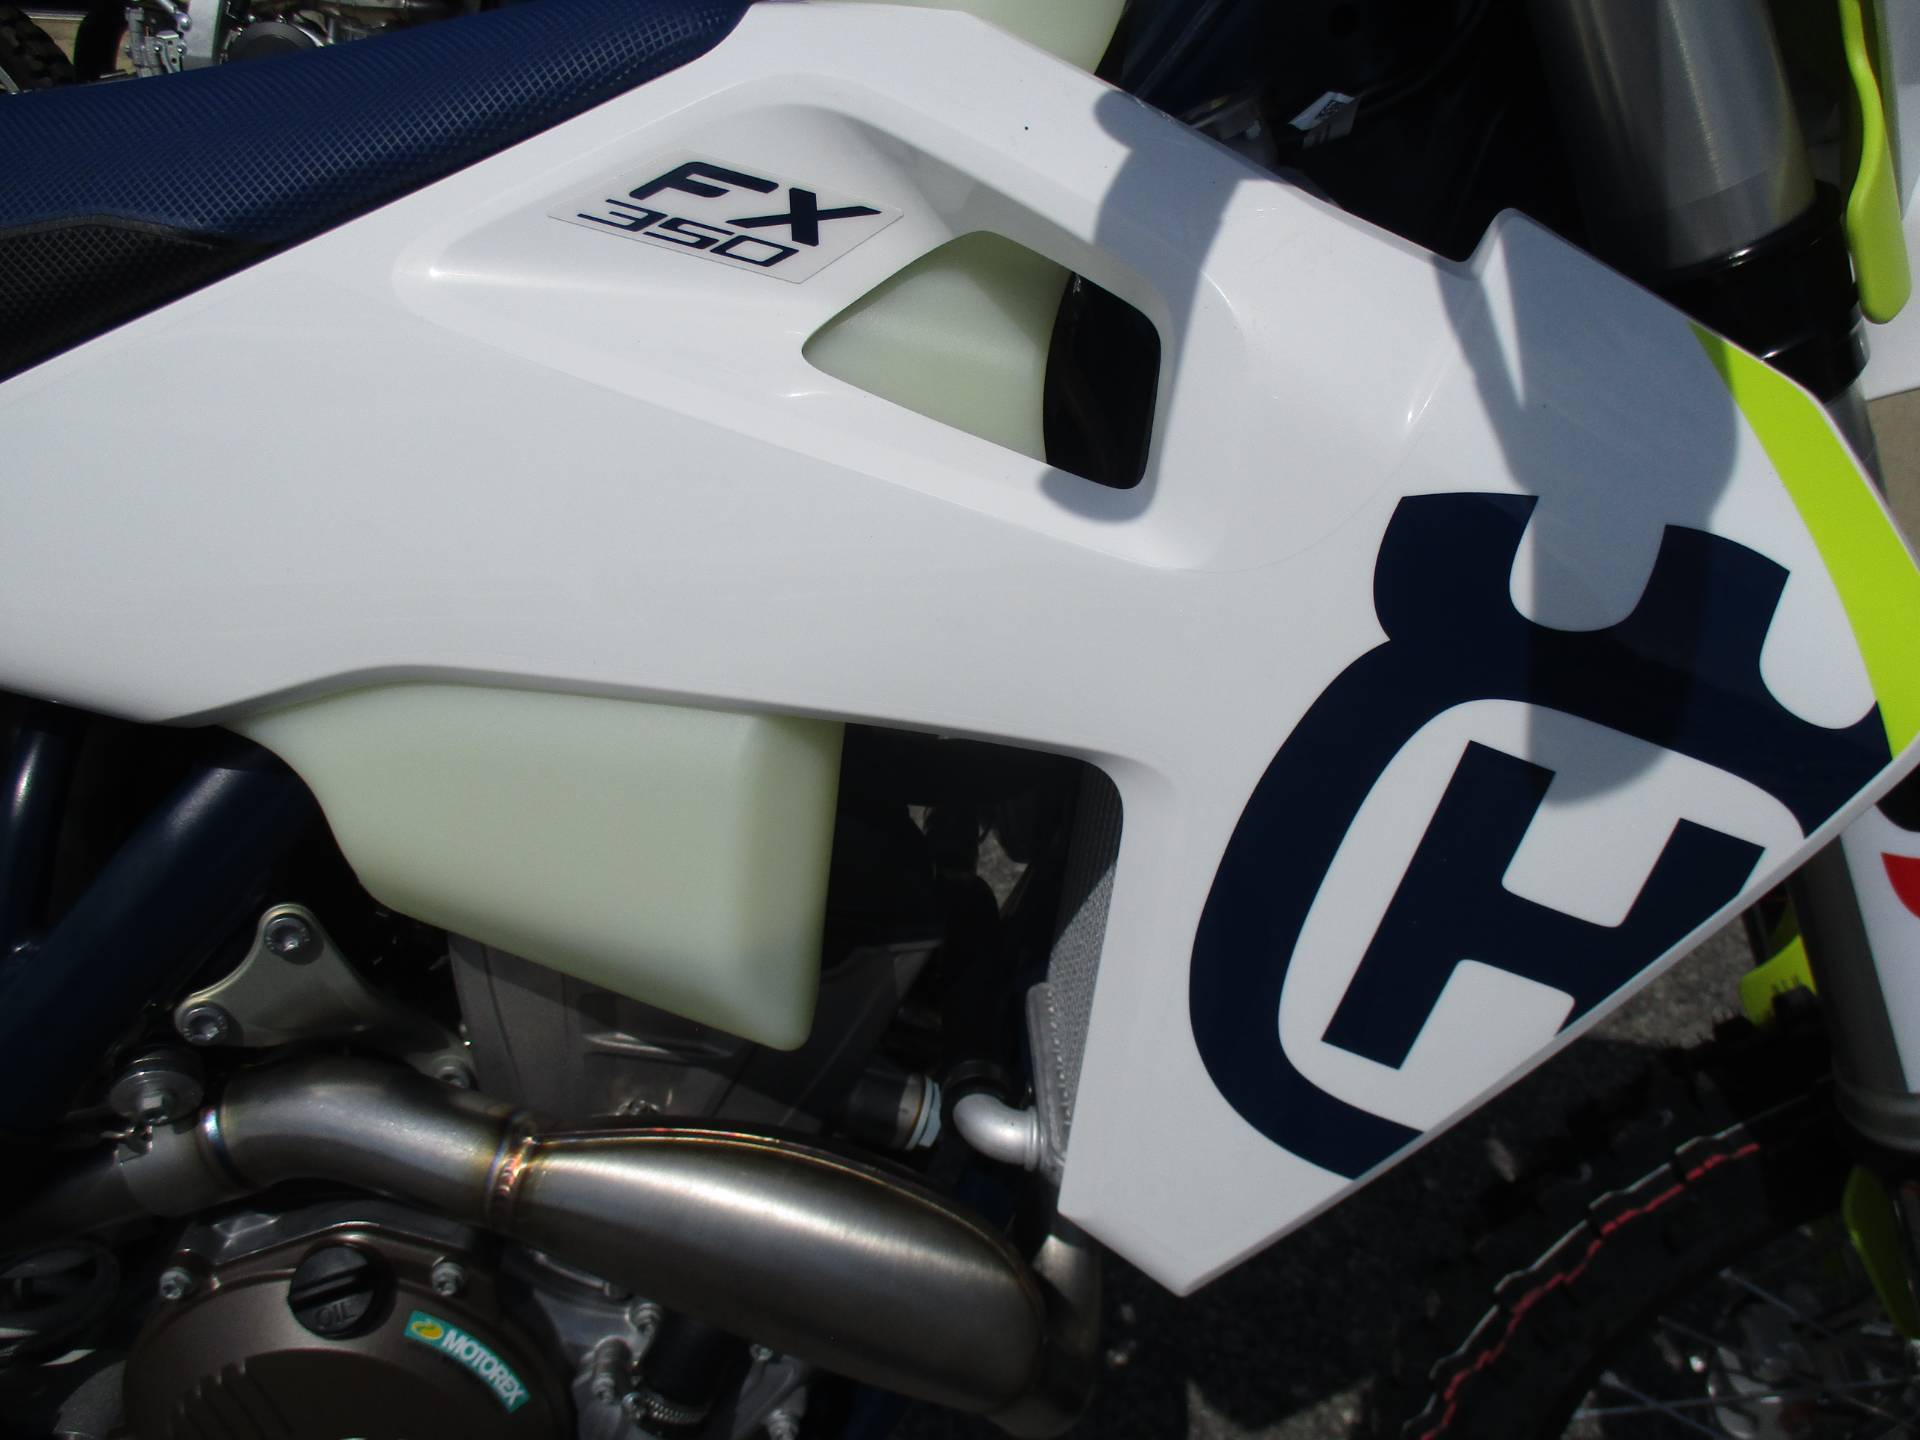 2019 Husqvarna FX 350 in Hendersonville, North Carolina - Photo 8